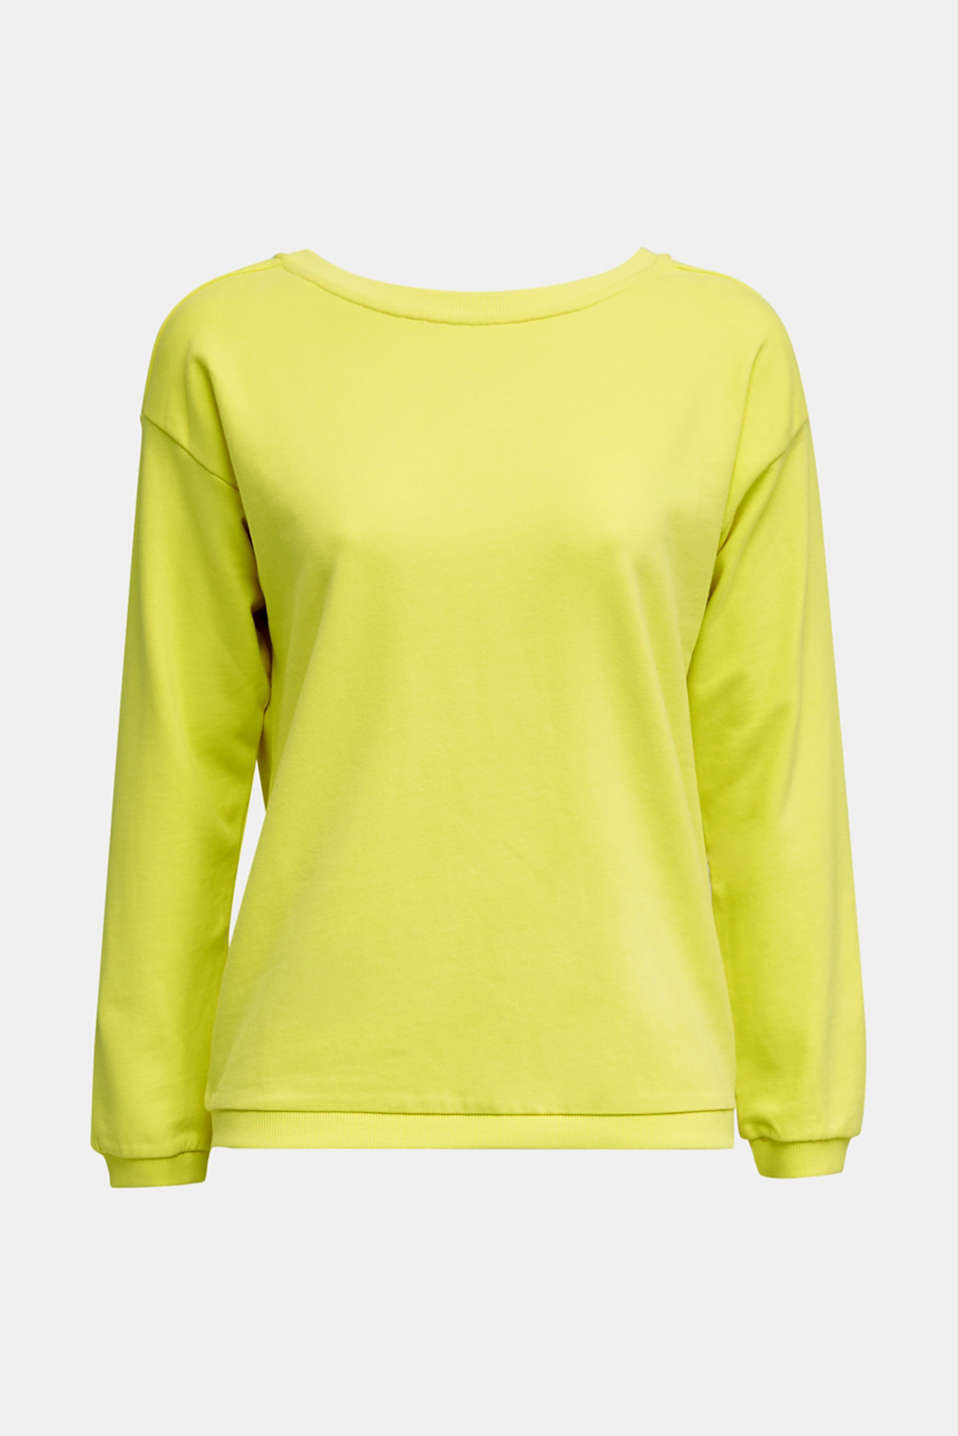 Sweatshirt with a back neckline, BRIGHT YELLOW, detail image number 5